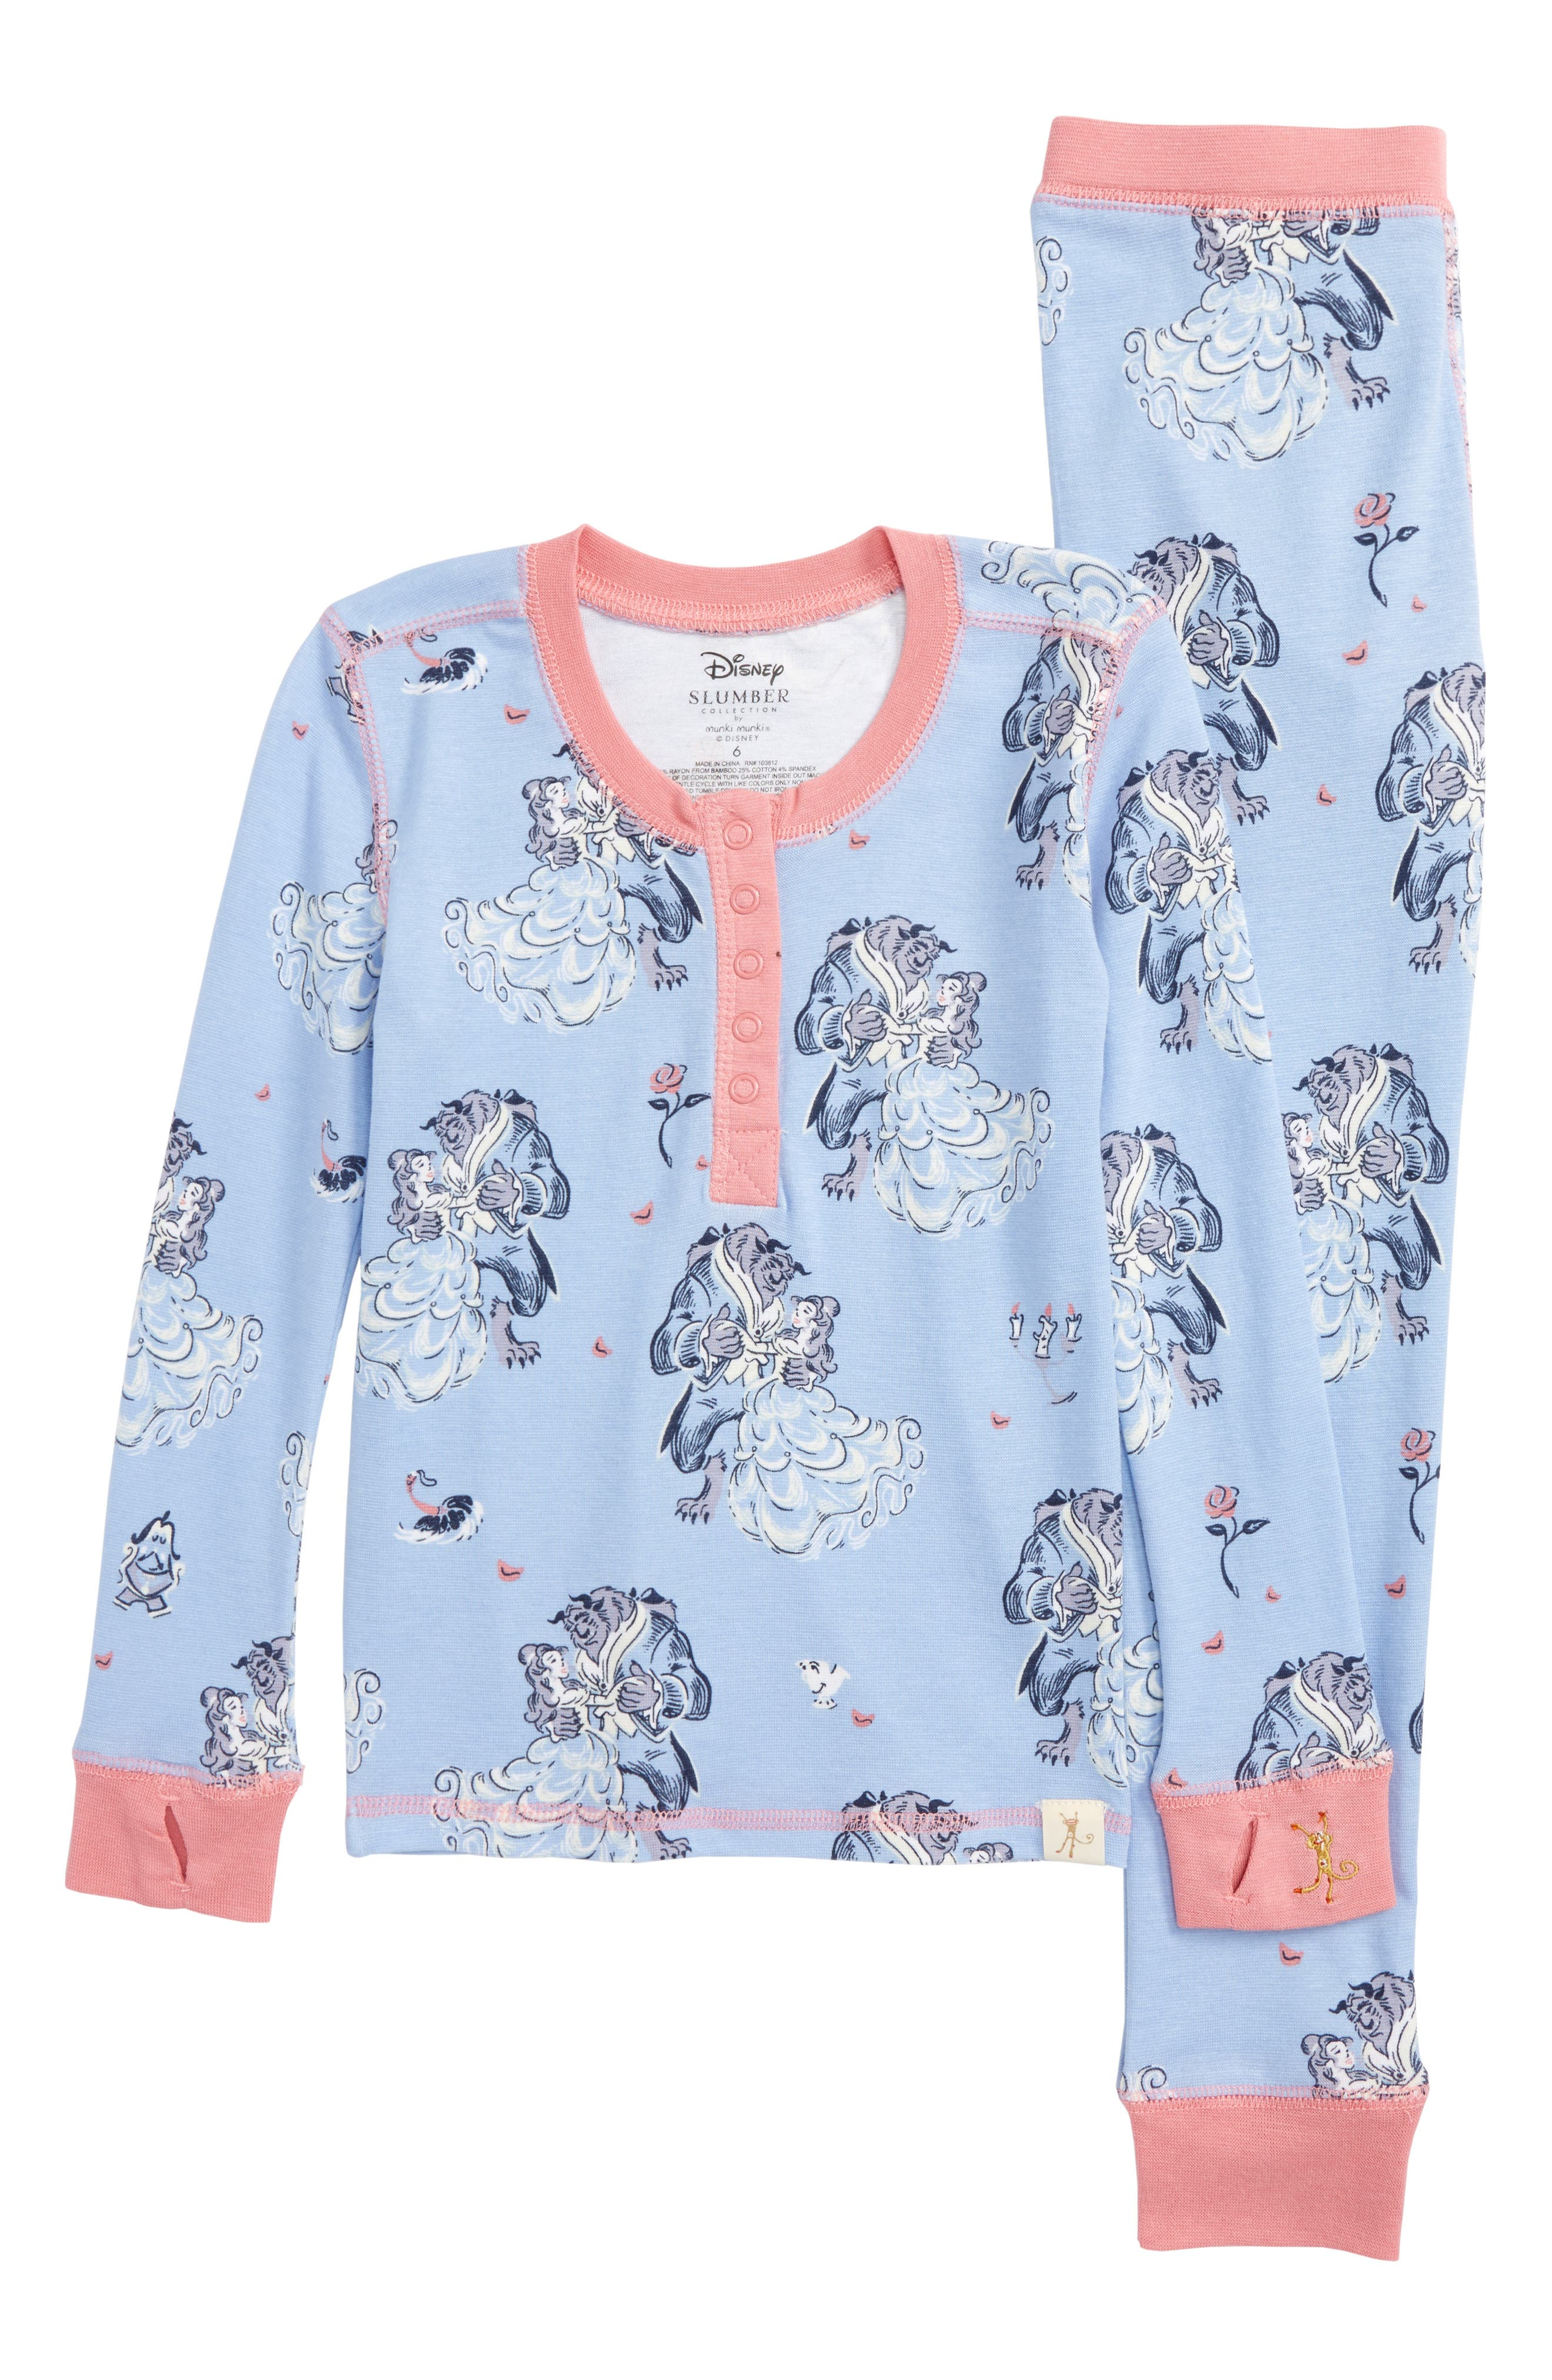 Disney – Beauty & The Beast Fitted Two-Piece Pajamas,                         Main,                         color,